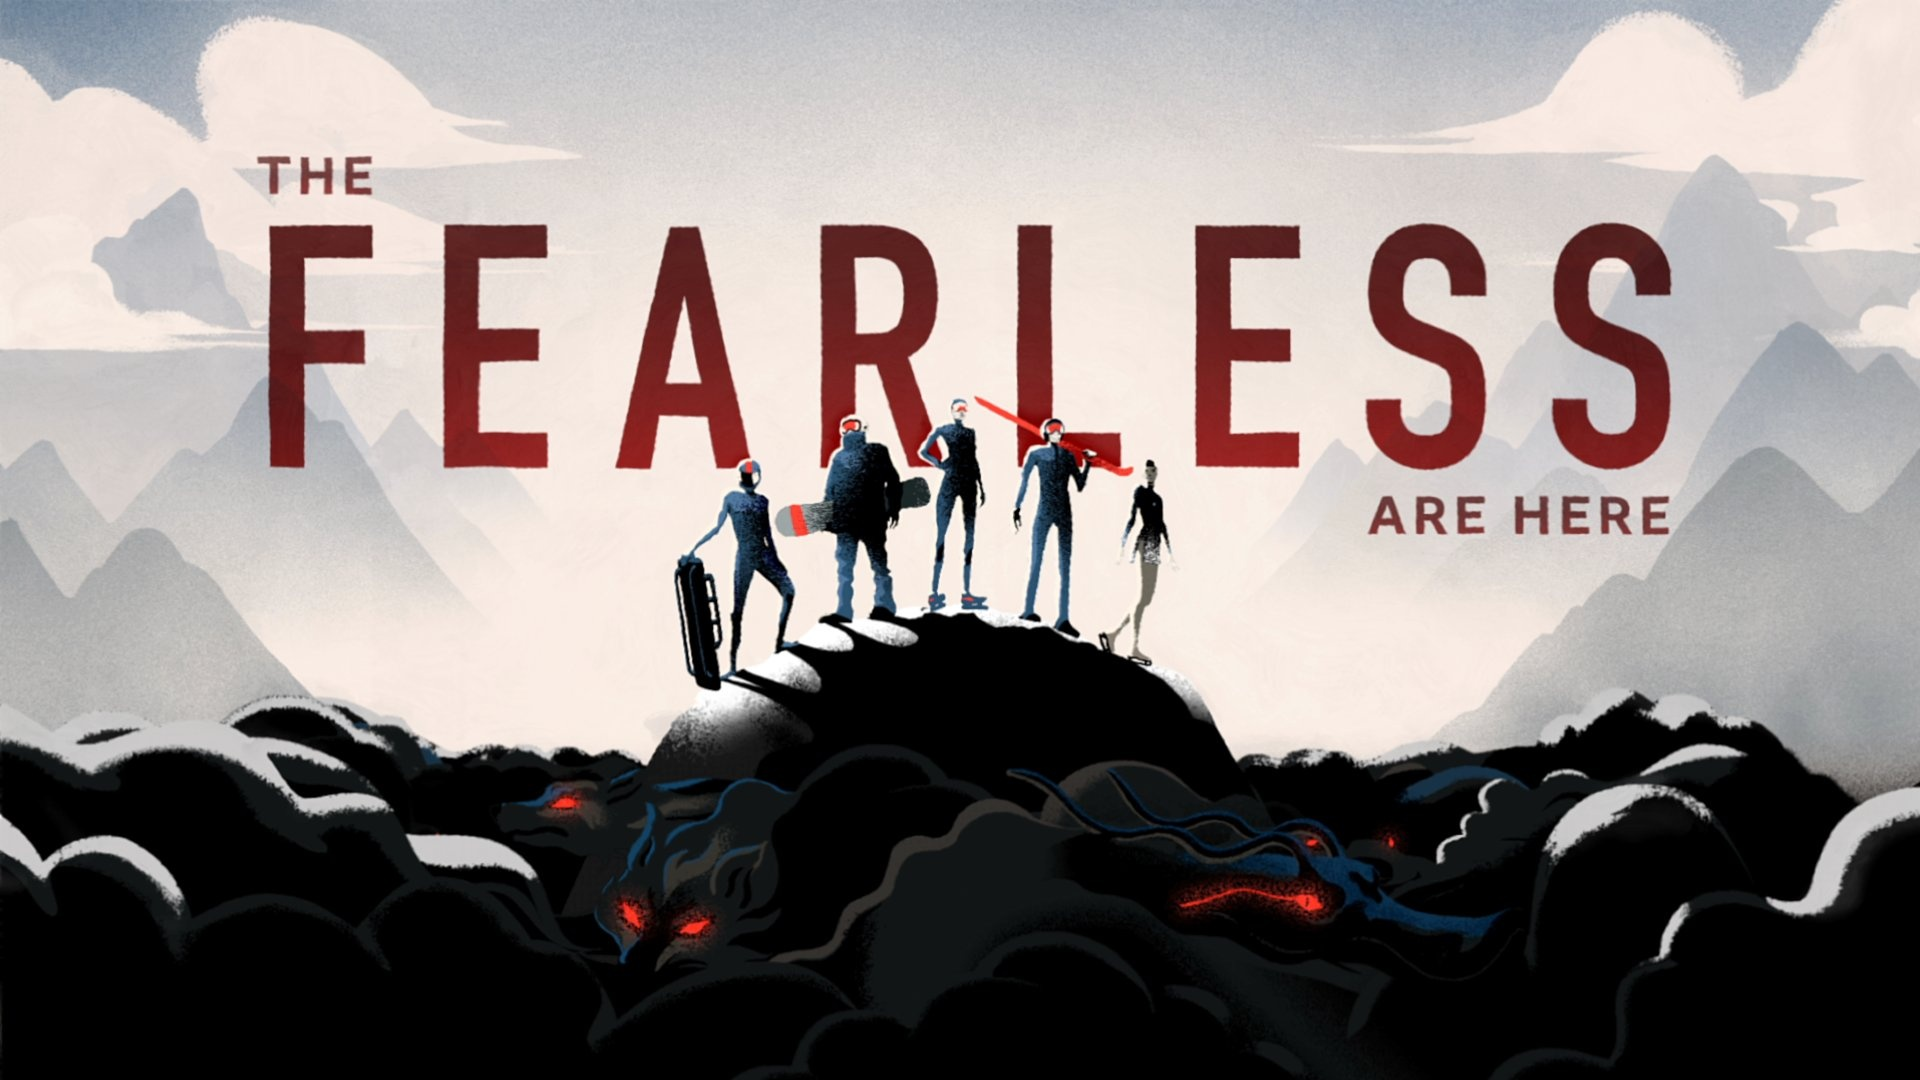 Thumbnail for BBC Winter Olympics - The Fearless are Here